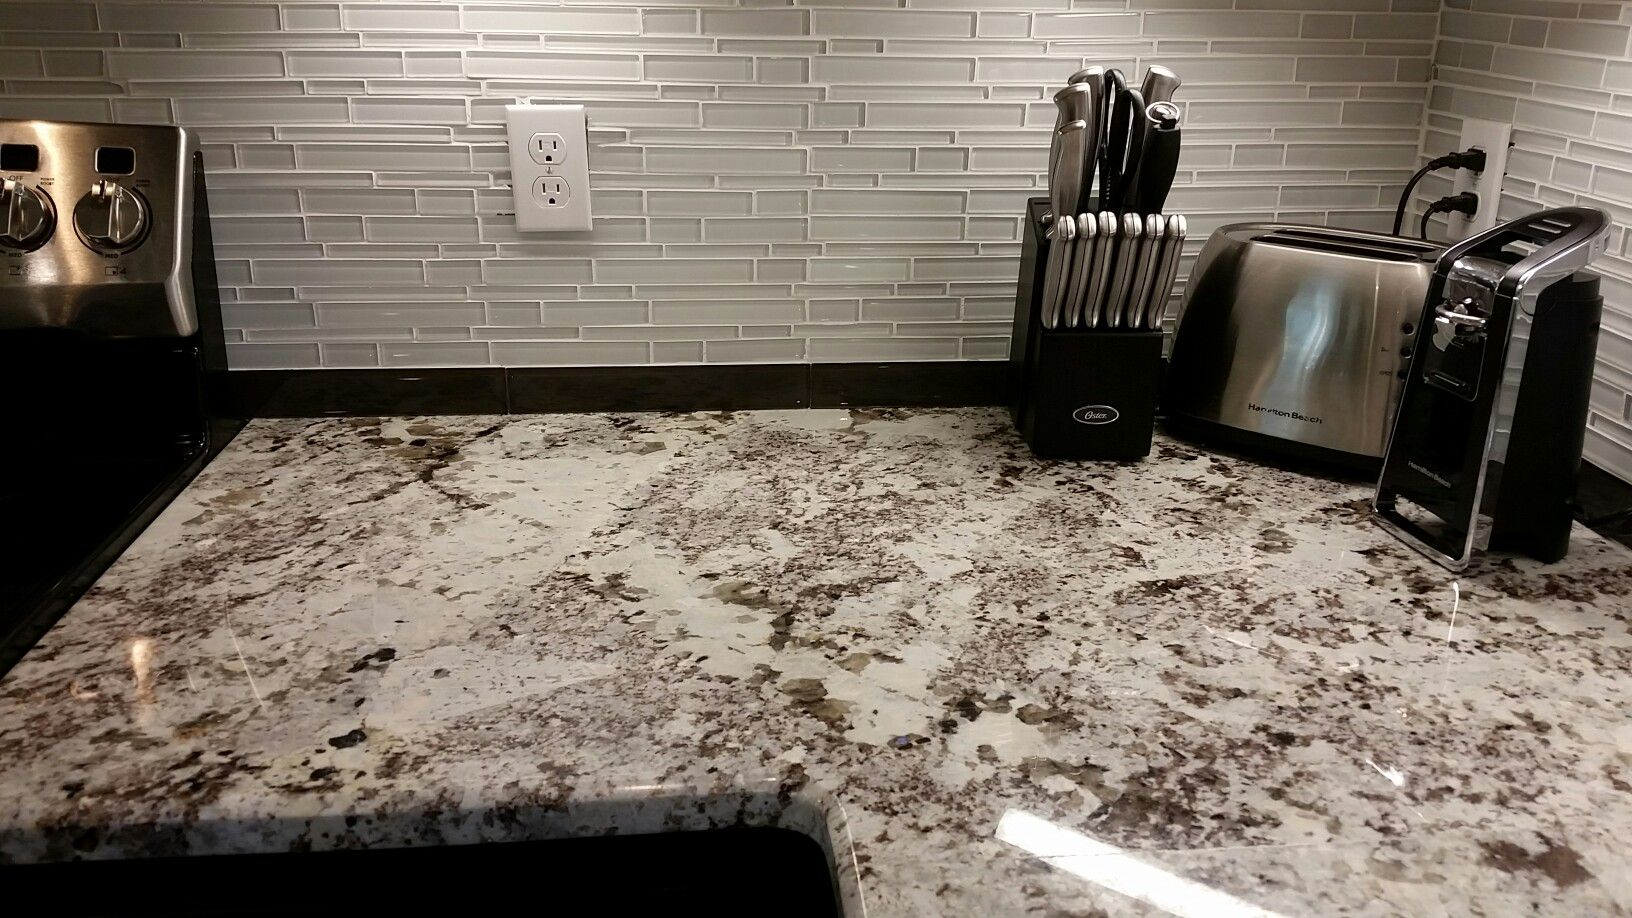 Alaska White Granite Glass Tile Backsplash Kitchen In